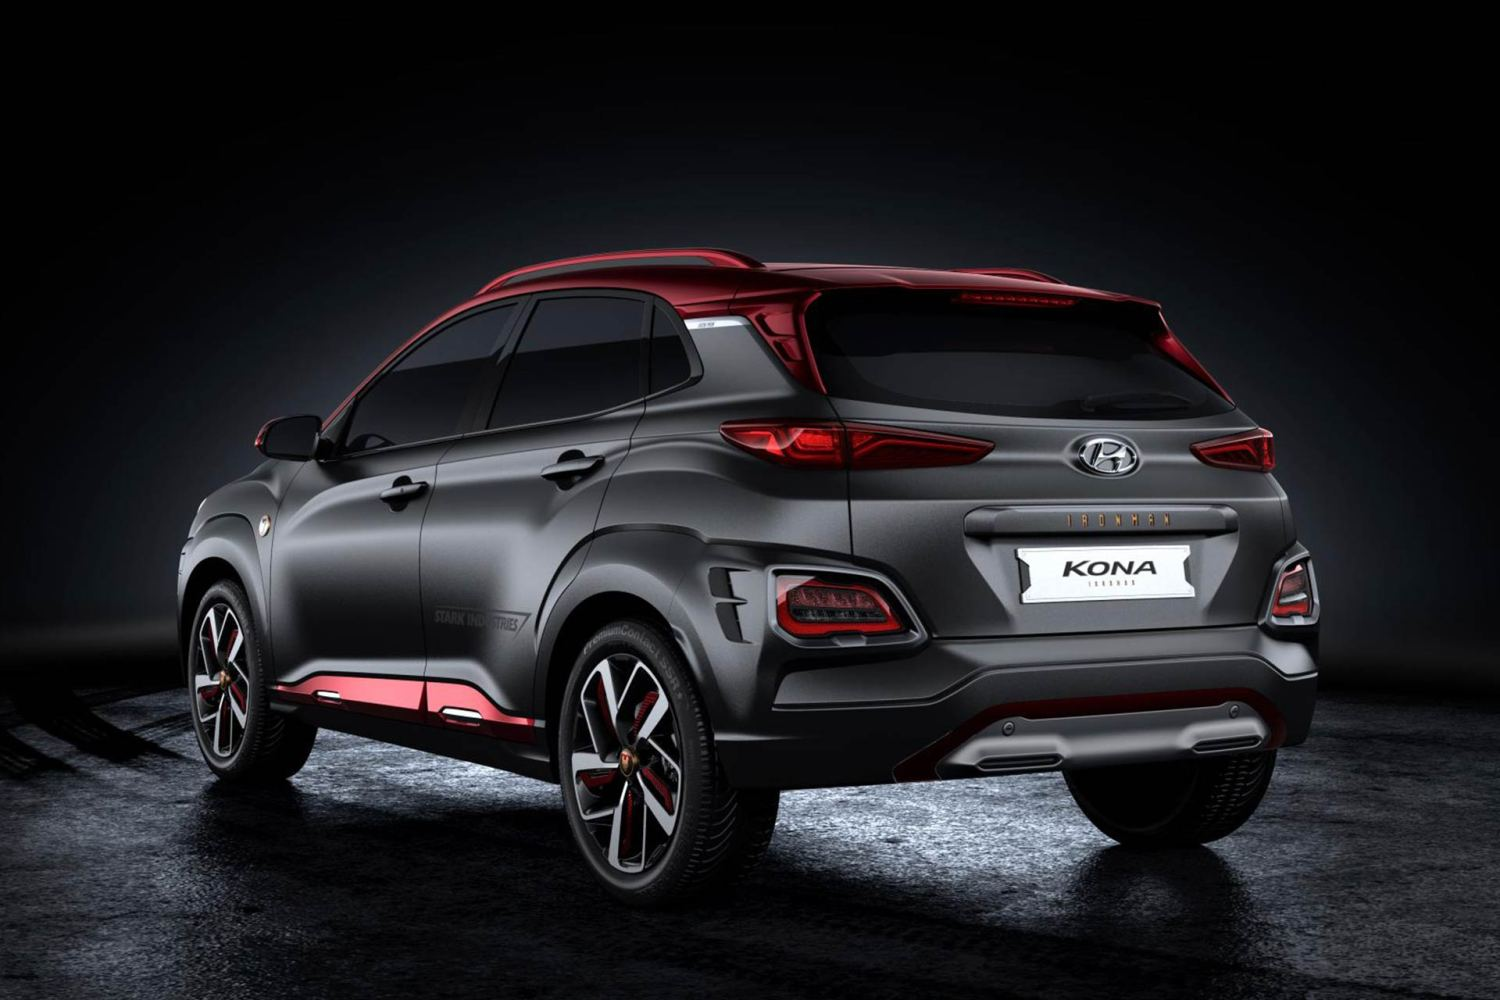 2019 Hyundai Kona Iron Man Edition